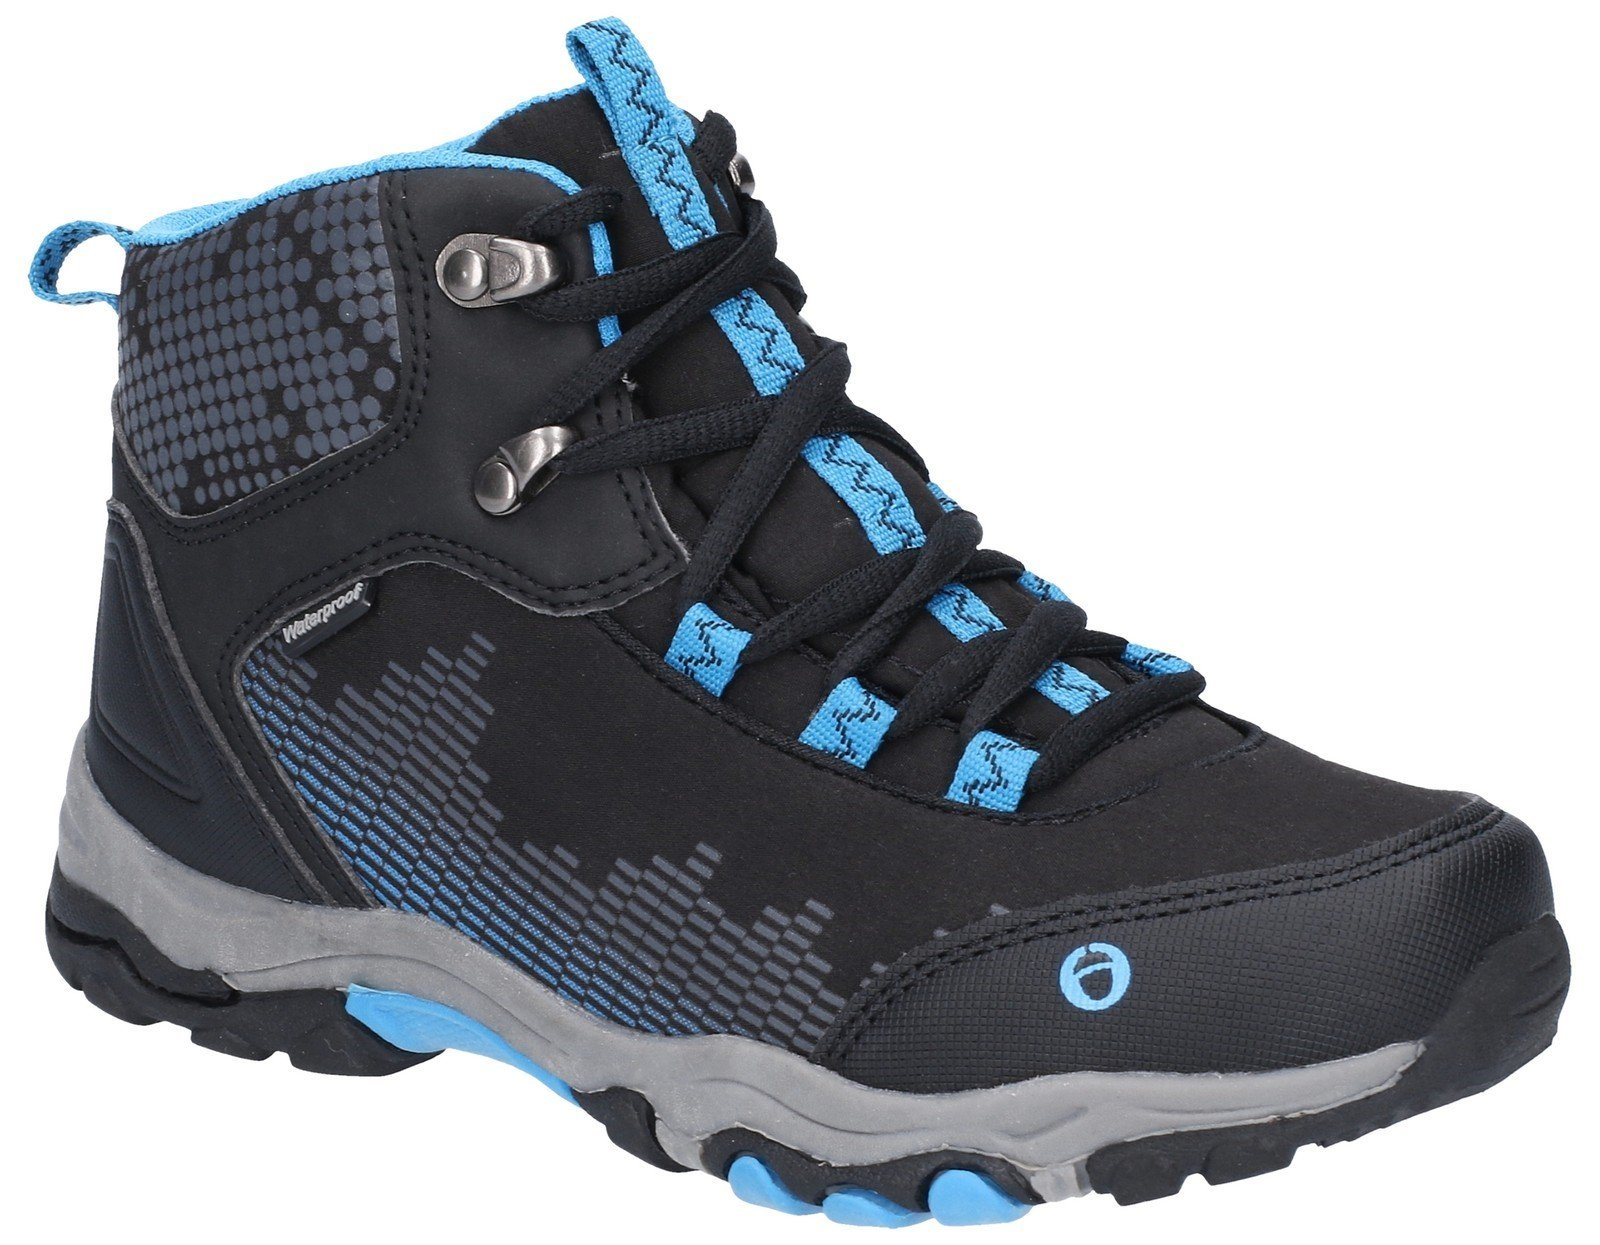 Cotswold Kid's Ducklington Lace Up Hiking Waterproof Boot Multicolor 28251 - Black/Blue 10